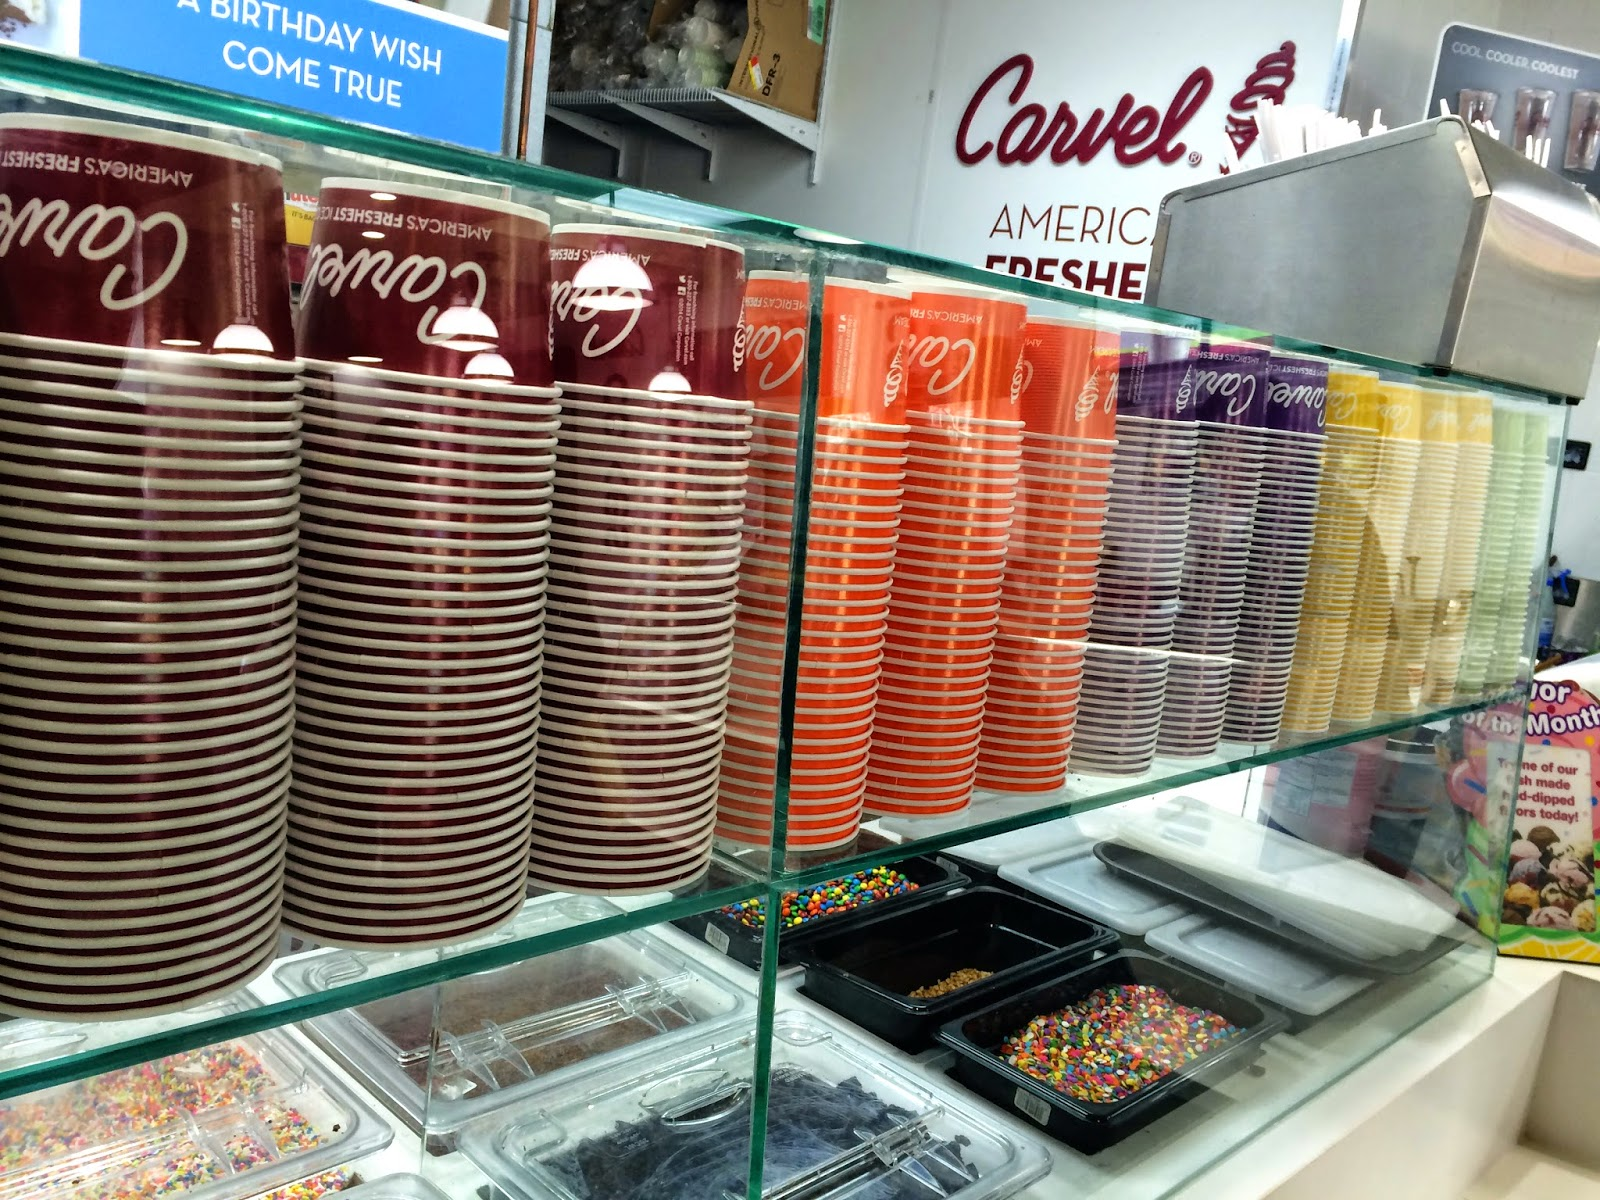 Topping bar at Carvel Ice Cream 9 Broadway